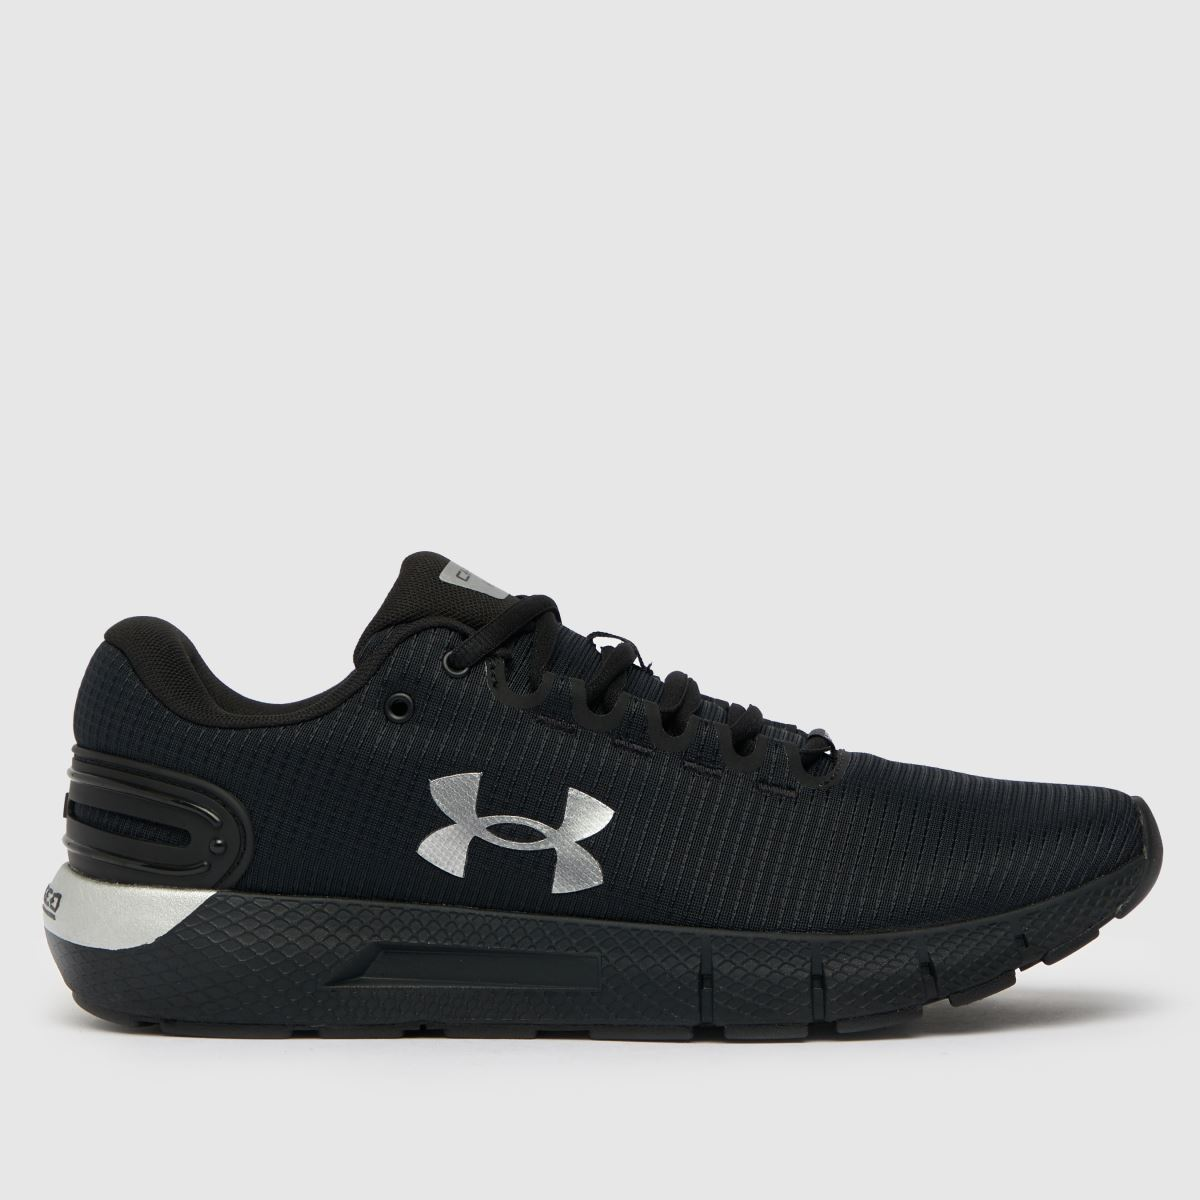 Under Armour Black Charged Rogue 2.5 Storm Trainers